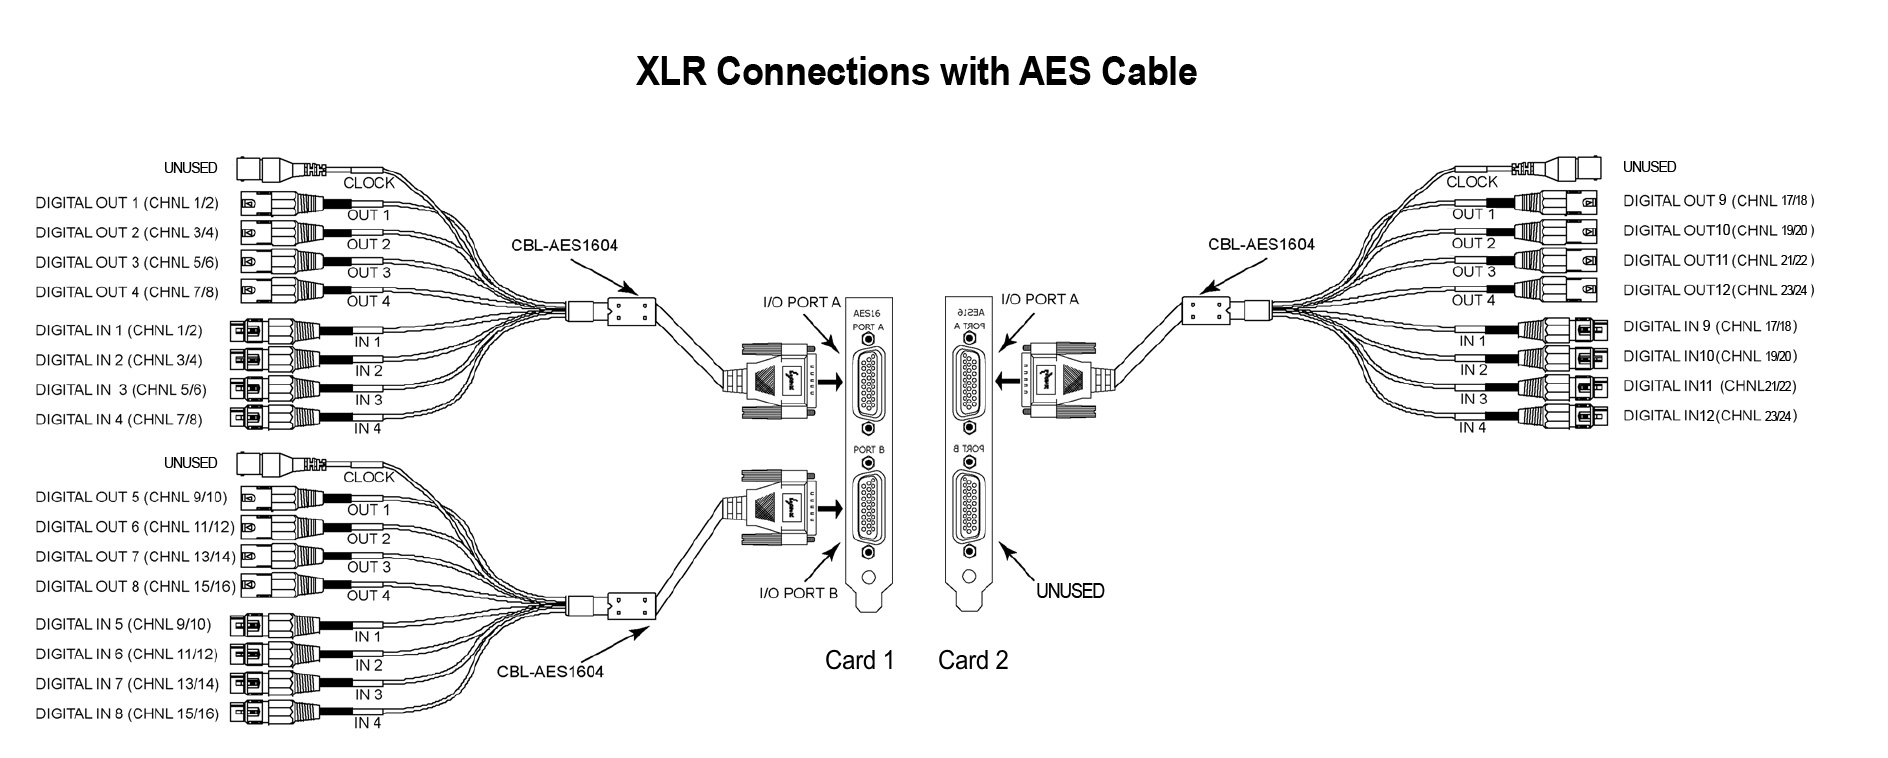 Wiring Diagram For An Endpin Jack Diagrams Images Xlr Guide